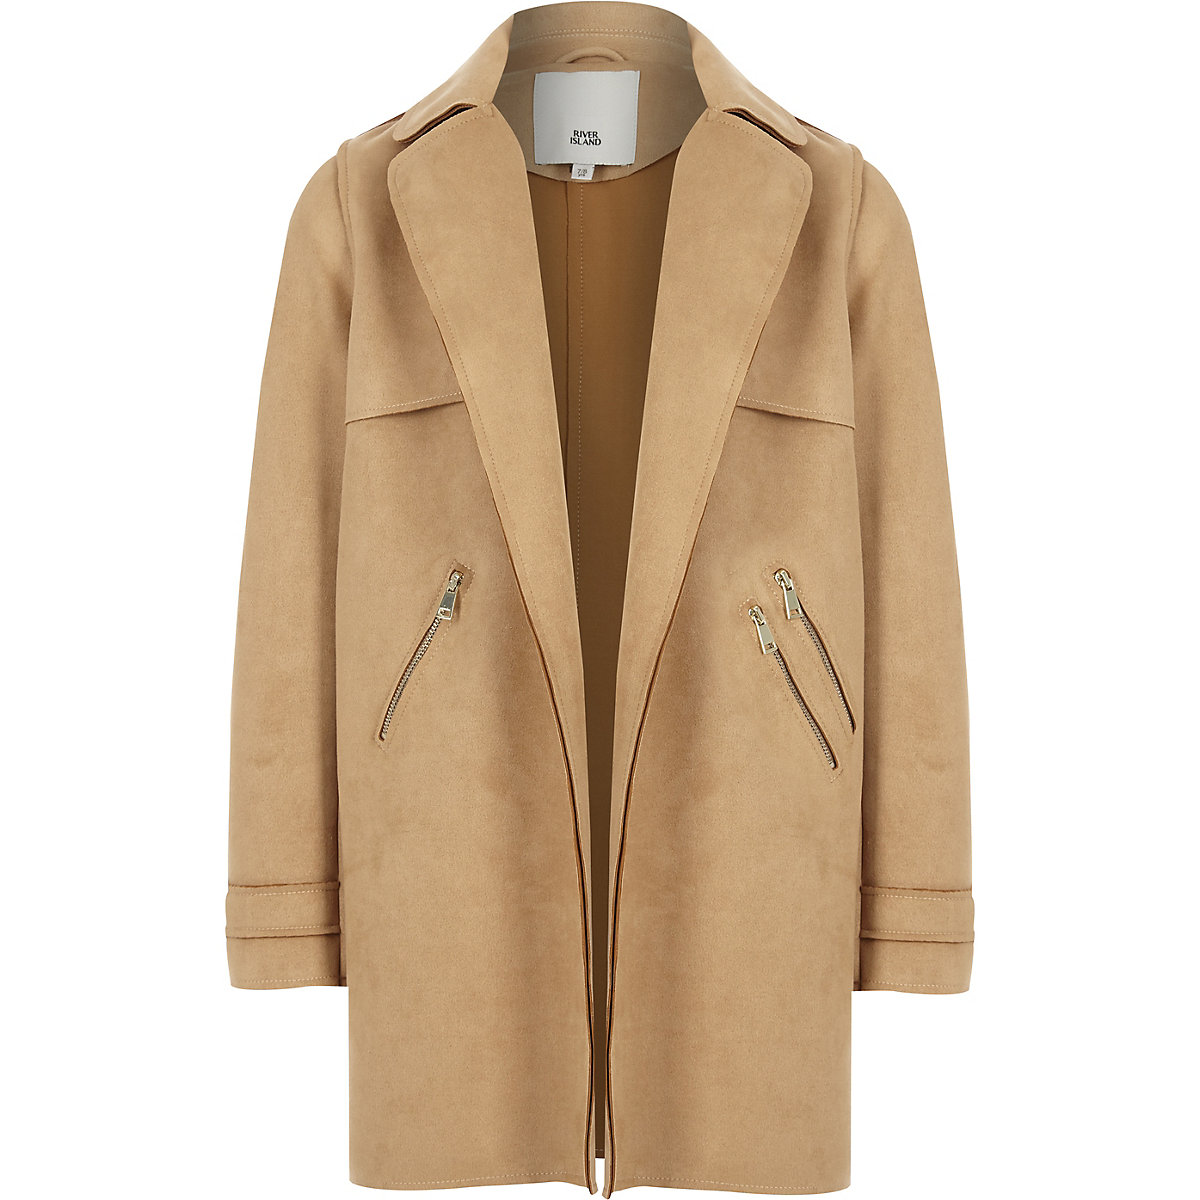 Girls brown faux suede trench coat